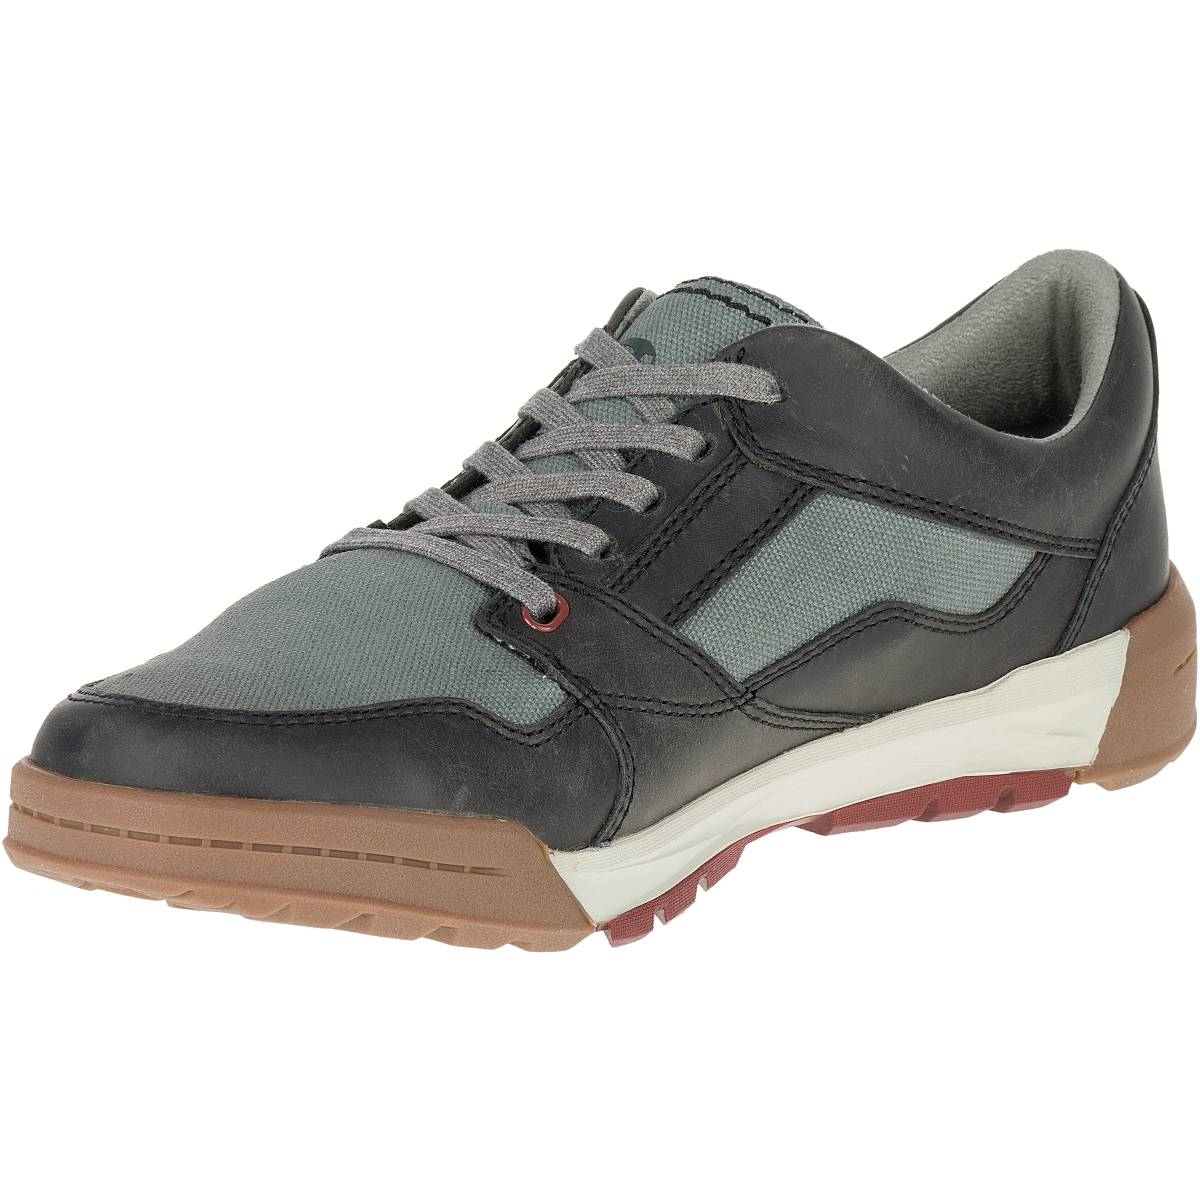 free delivery sale another chance Merrell Berner Shift Lace Shoes (Men's) - Granite